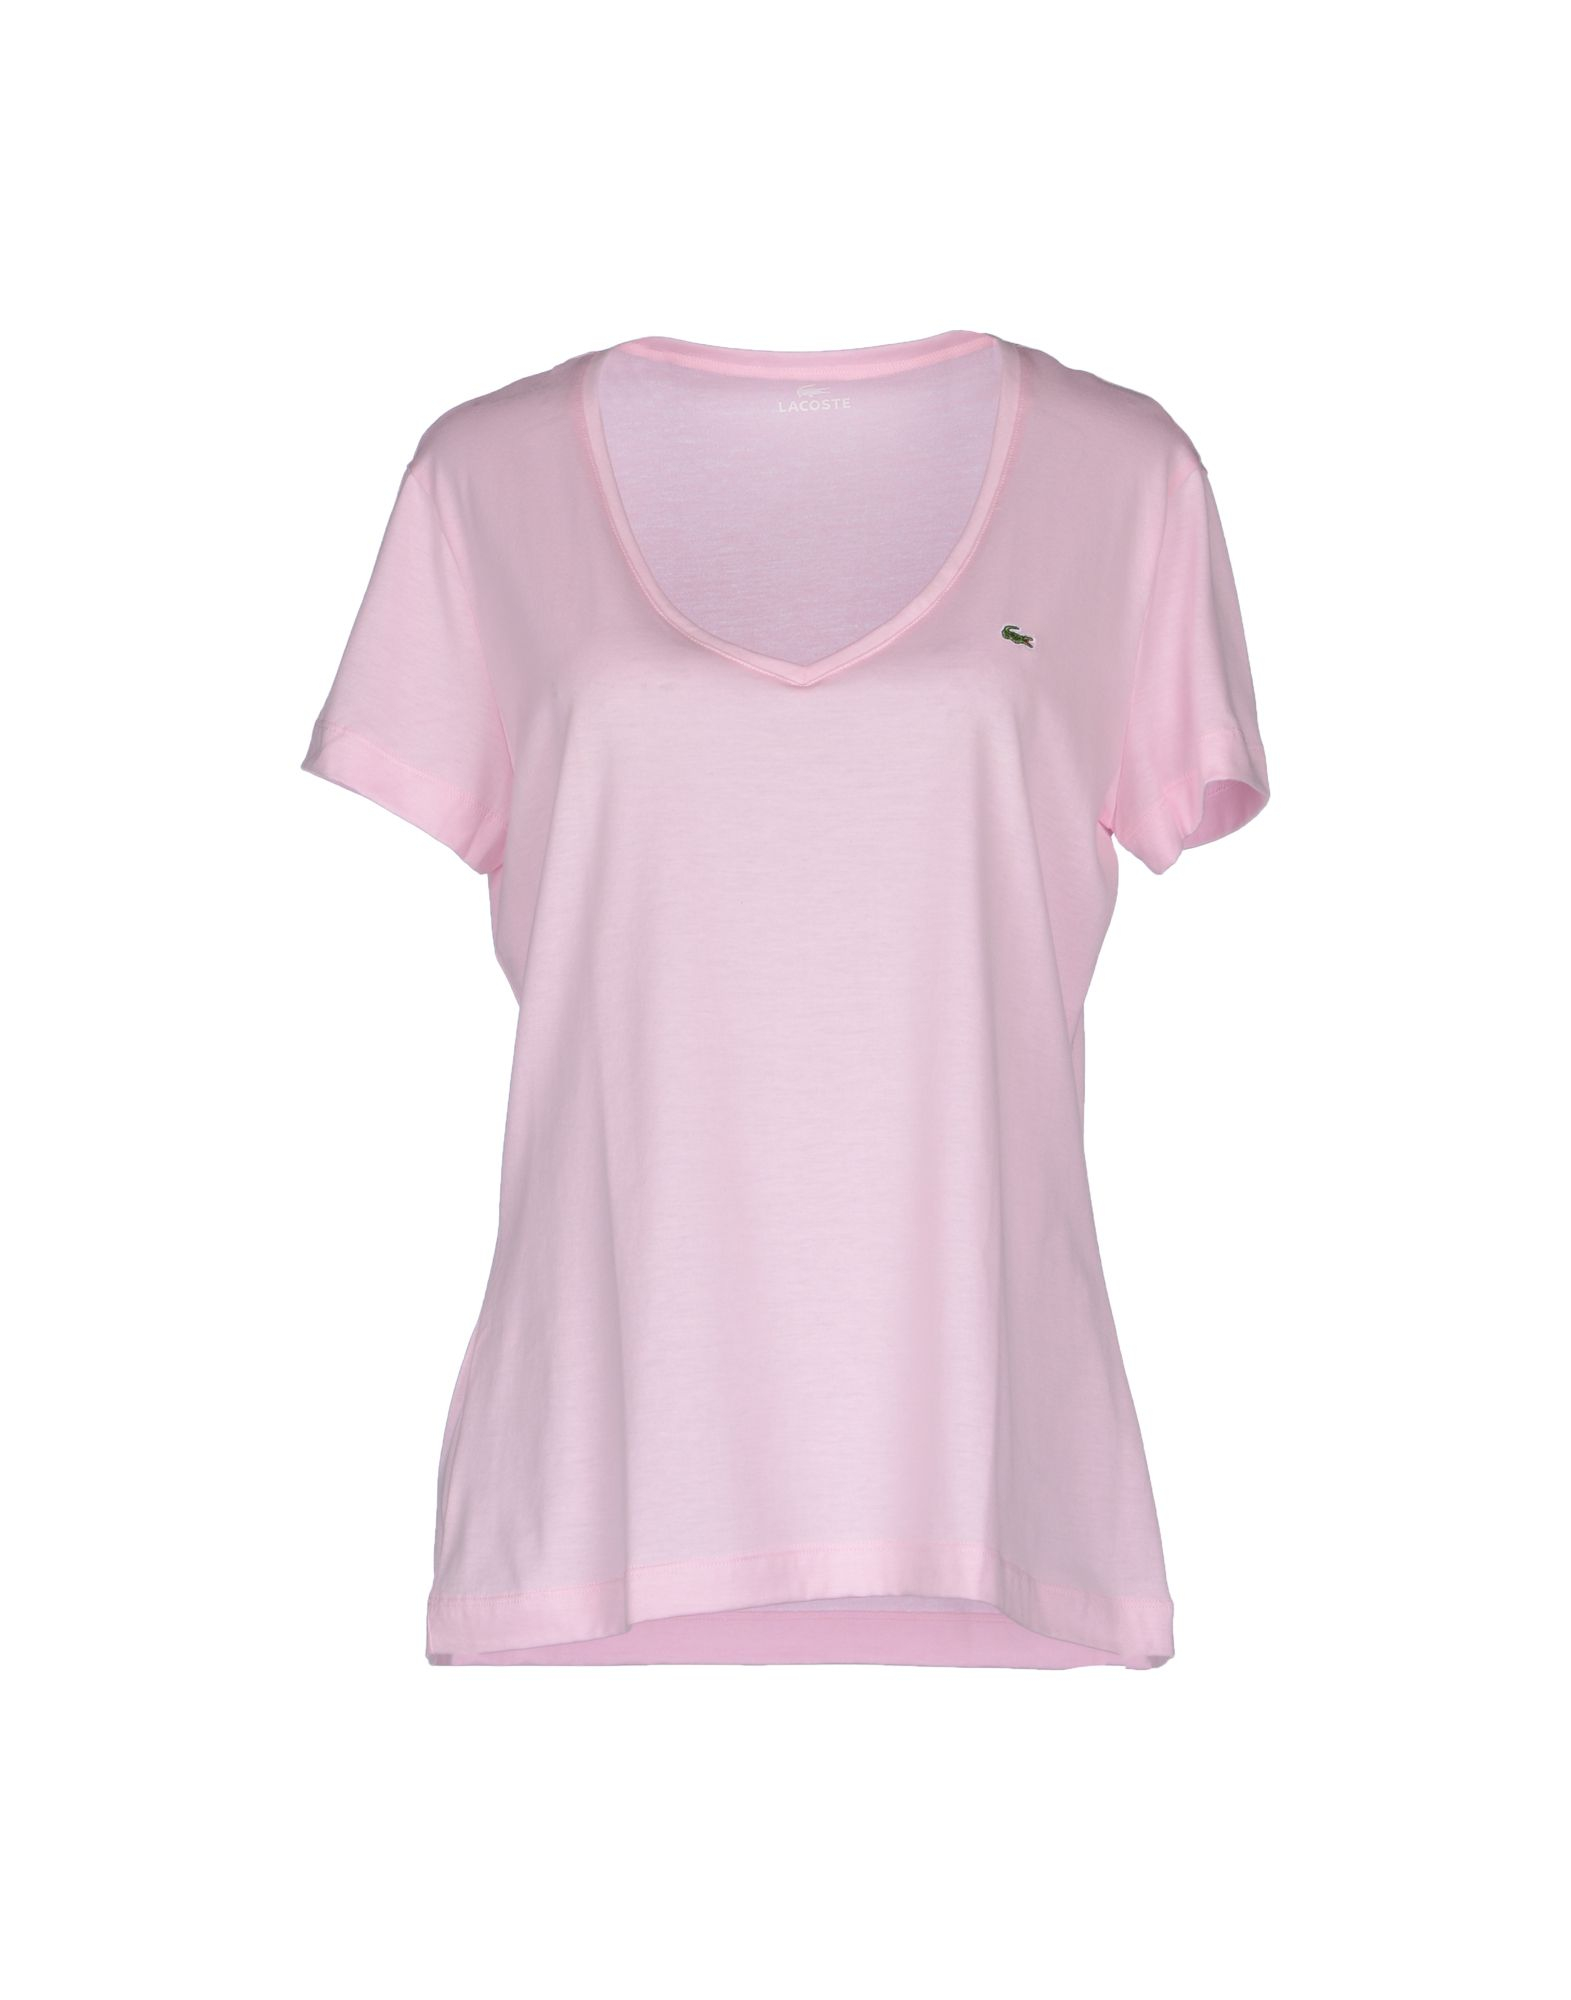 Lacoste Short Sleeve T-shirt in Pink | Lyst